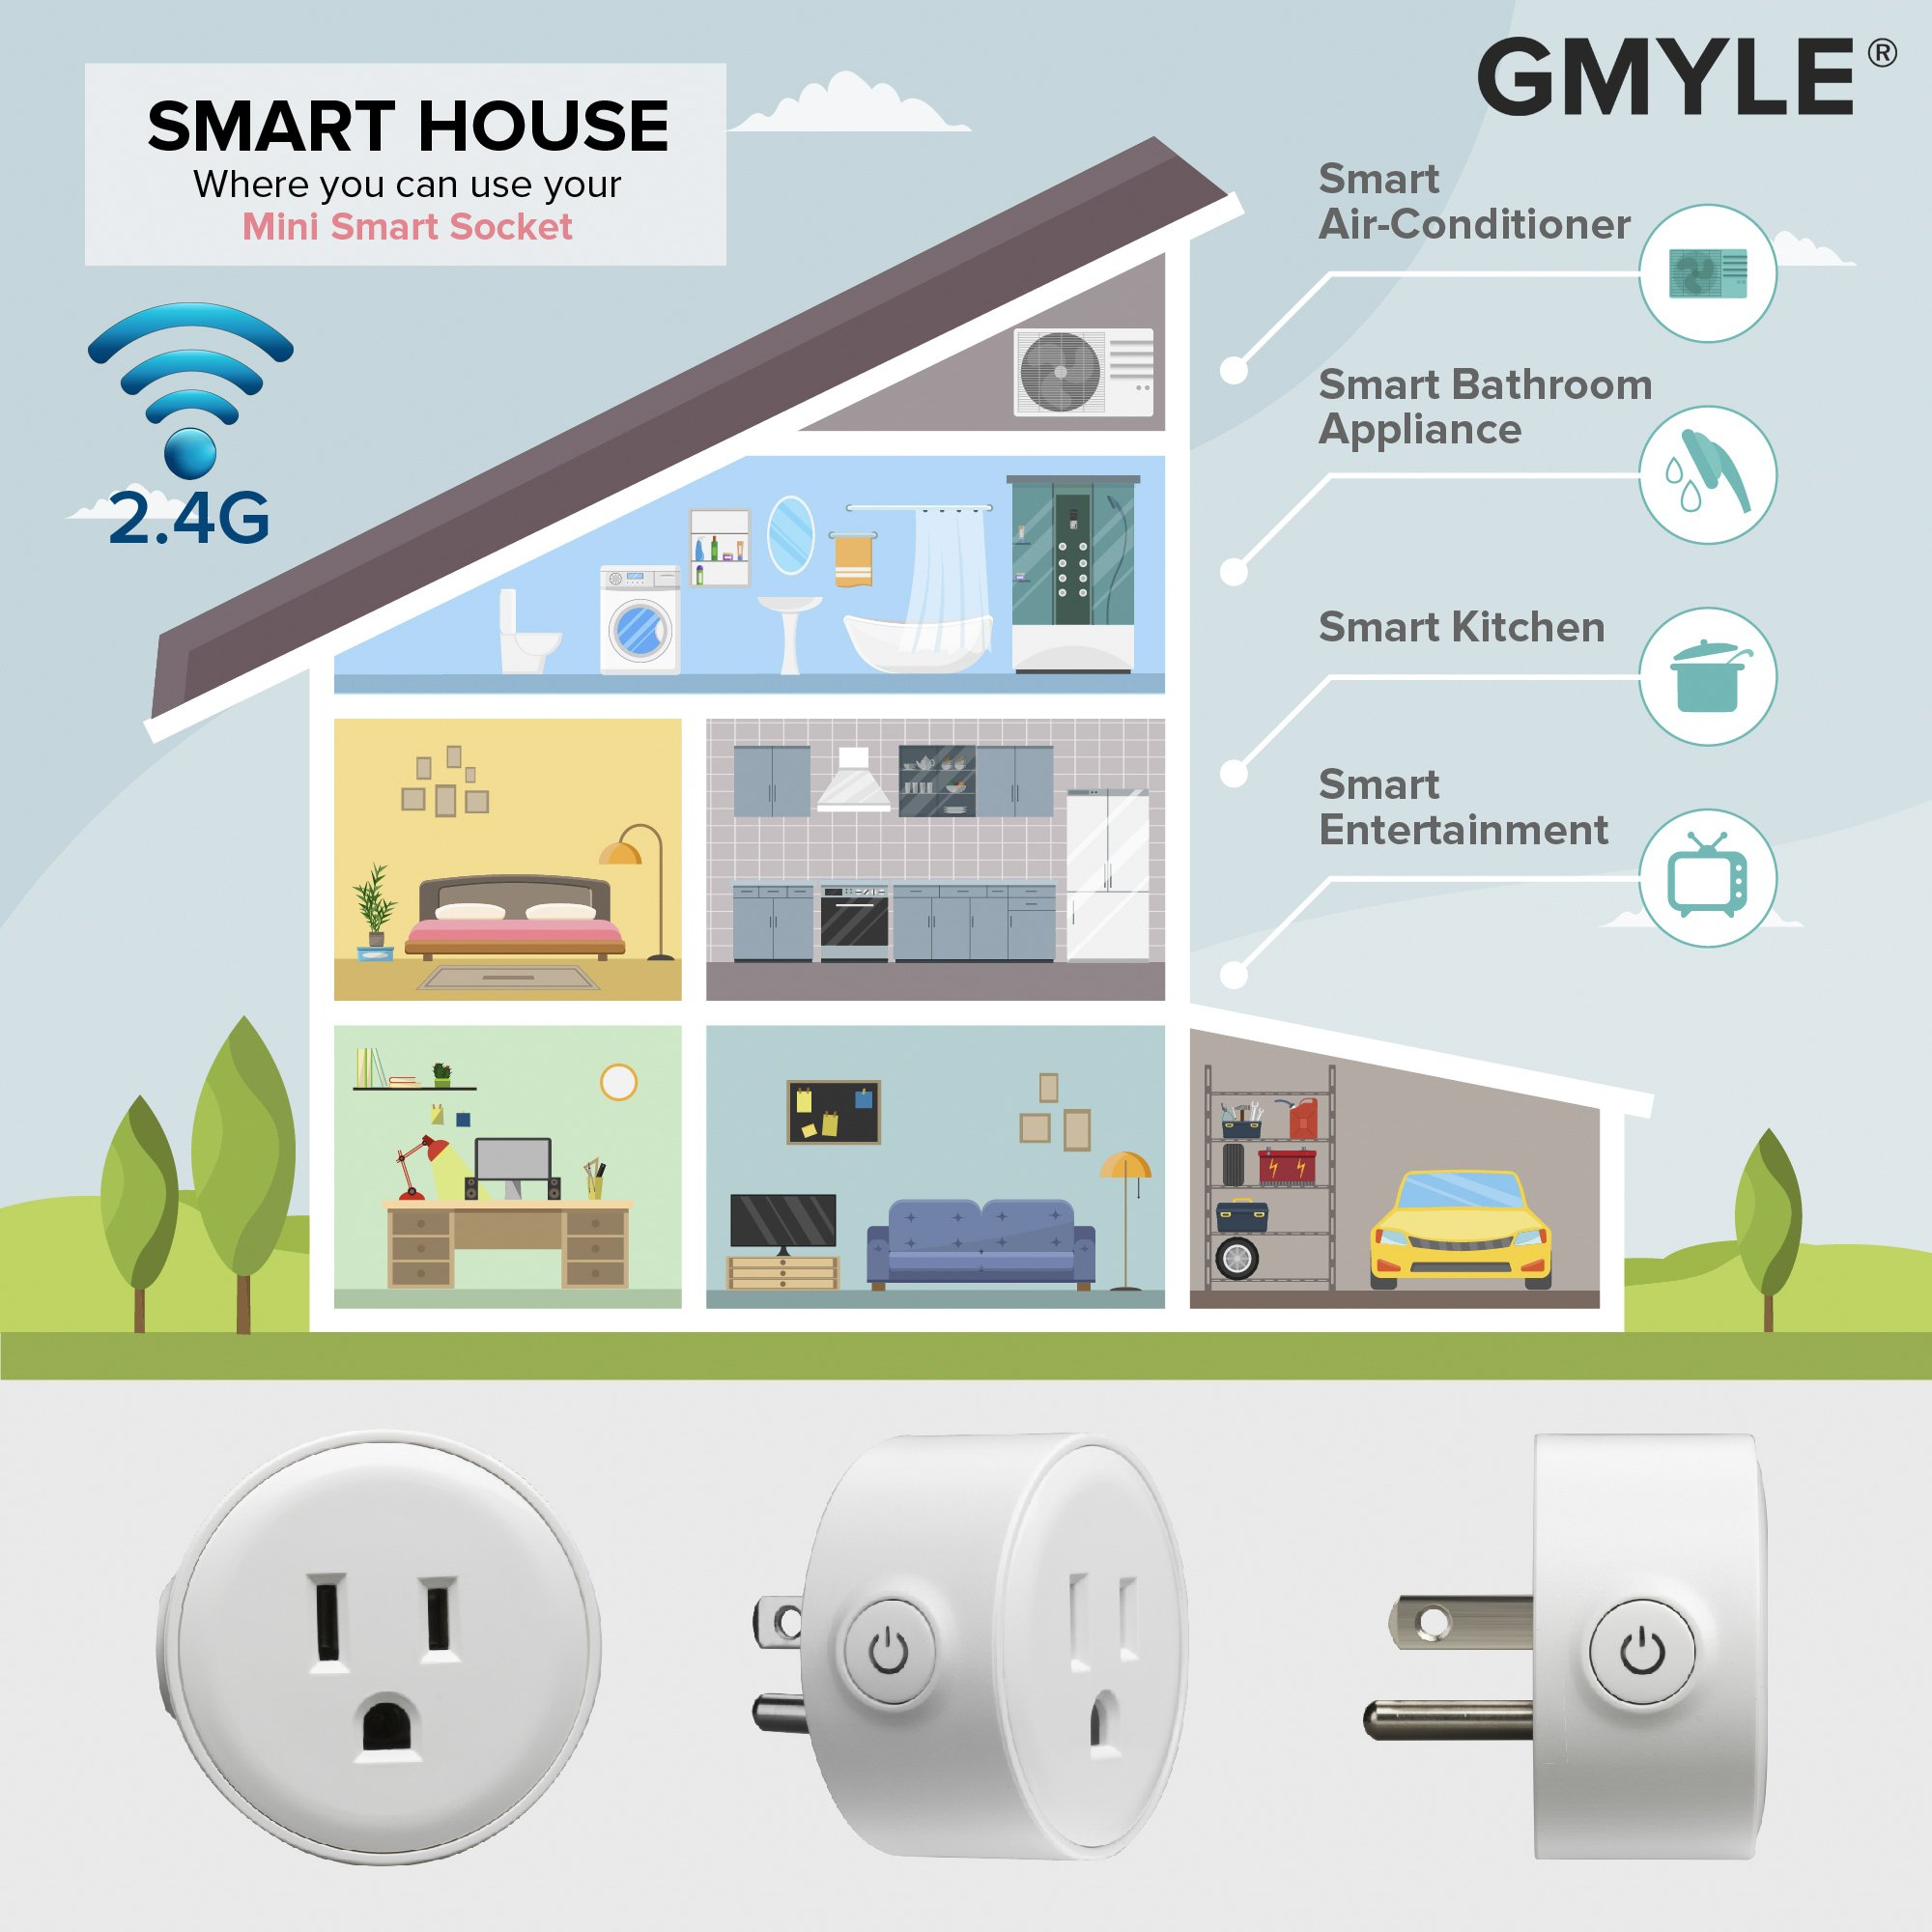 GMYLE 4 Pack Wifi Smart Plug Mini Outlet Power Control Socket, Remote Control Your Electric Devices from Anywhere, No Hub Required, Work with Amazon Alexa Echo Dot & Google Home, White by GMYLE (Image #3)